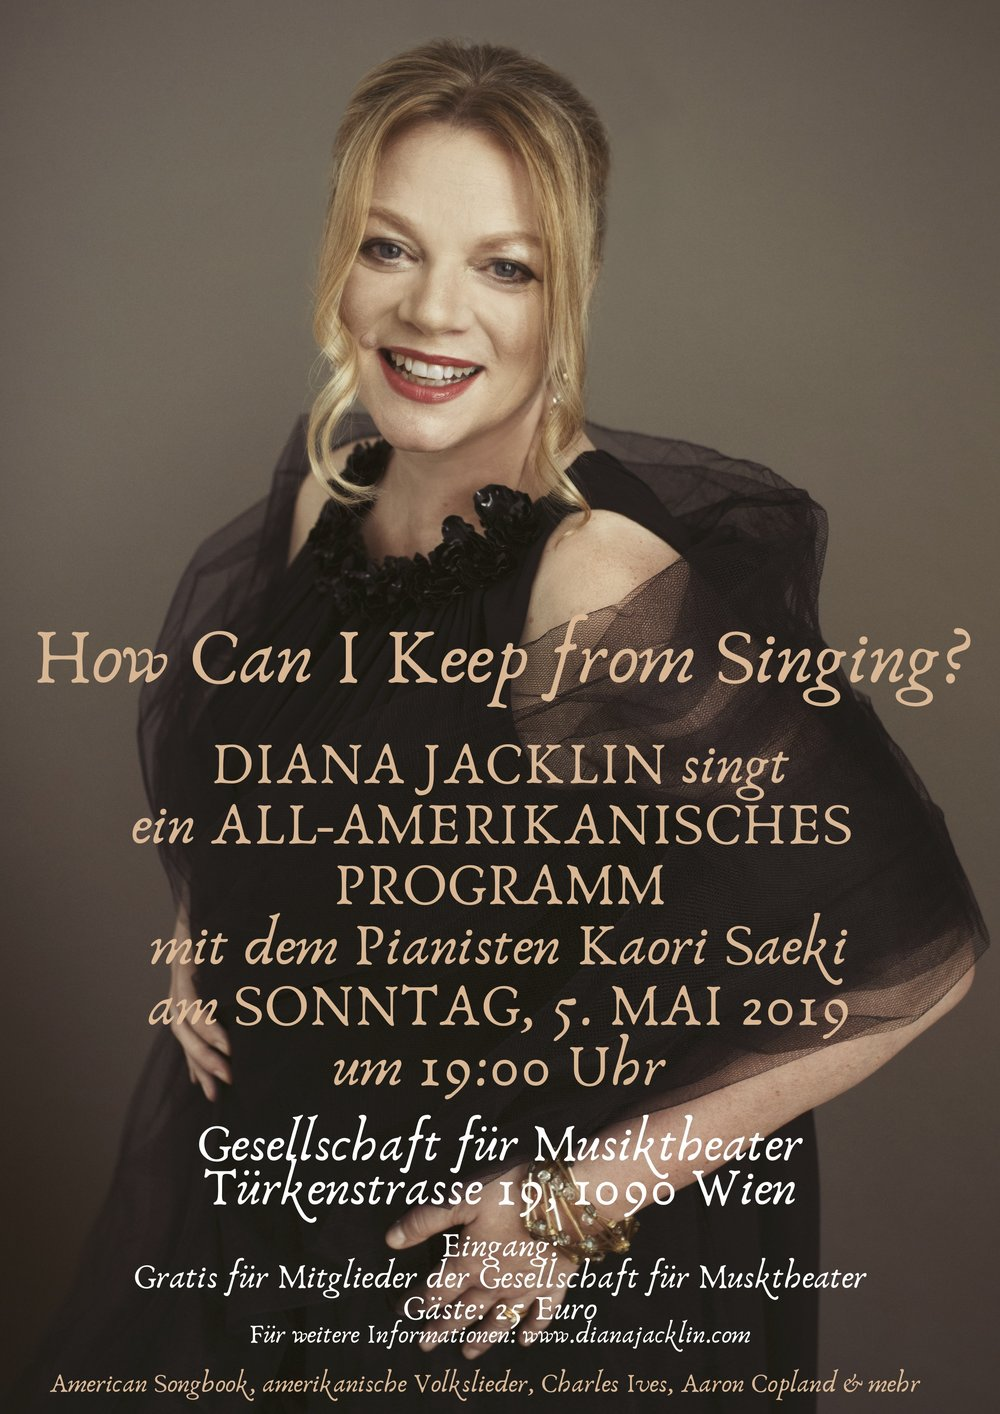 _How Can I Keep from Singing_GermanPoster.jpg